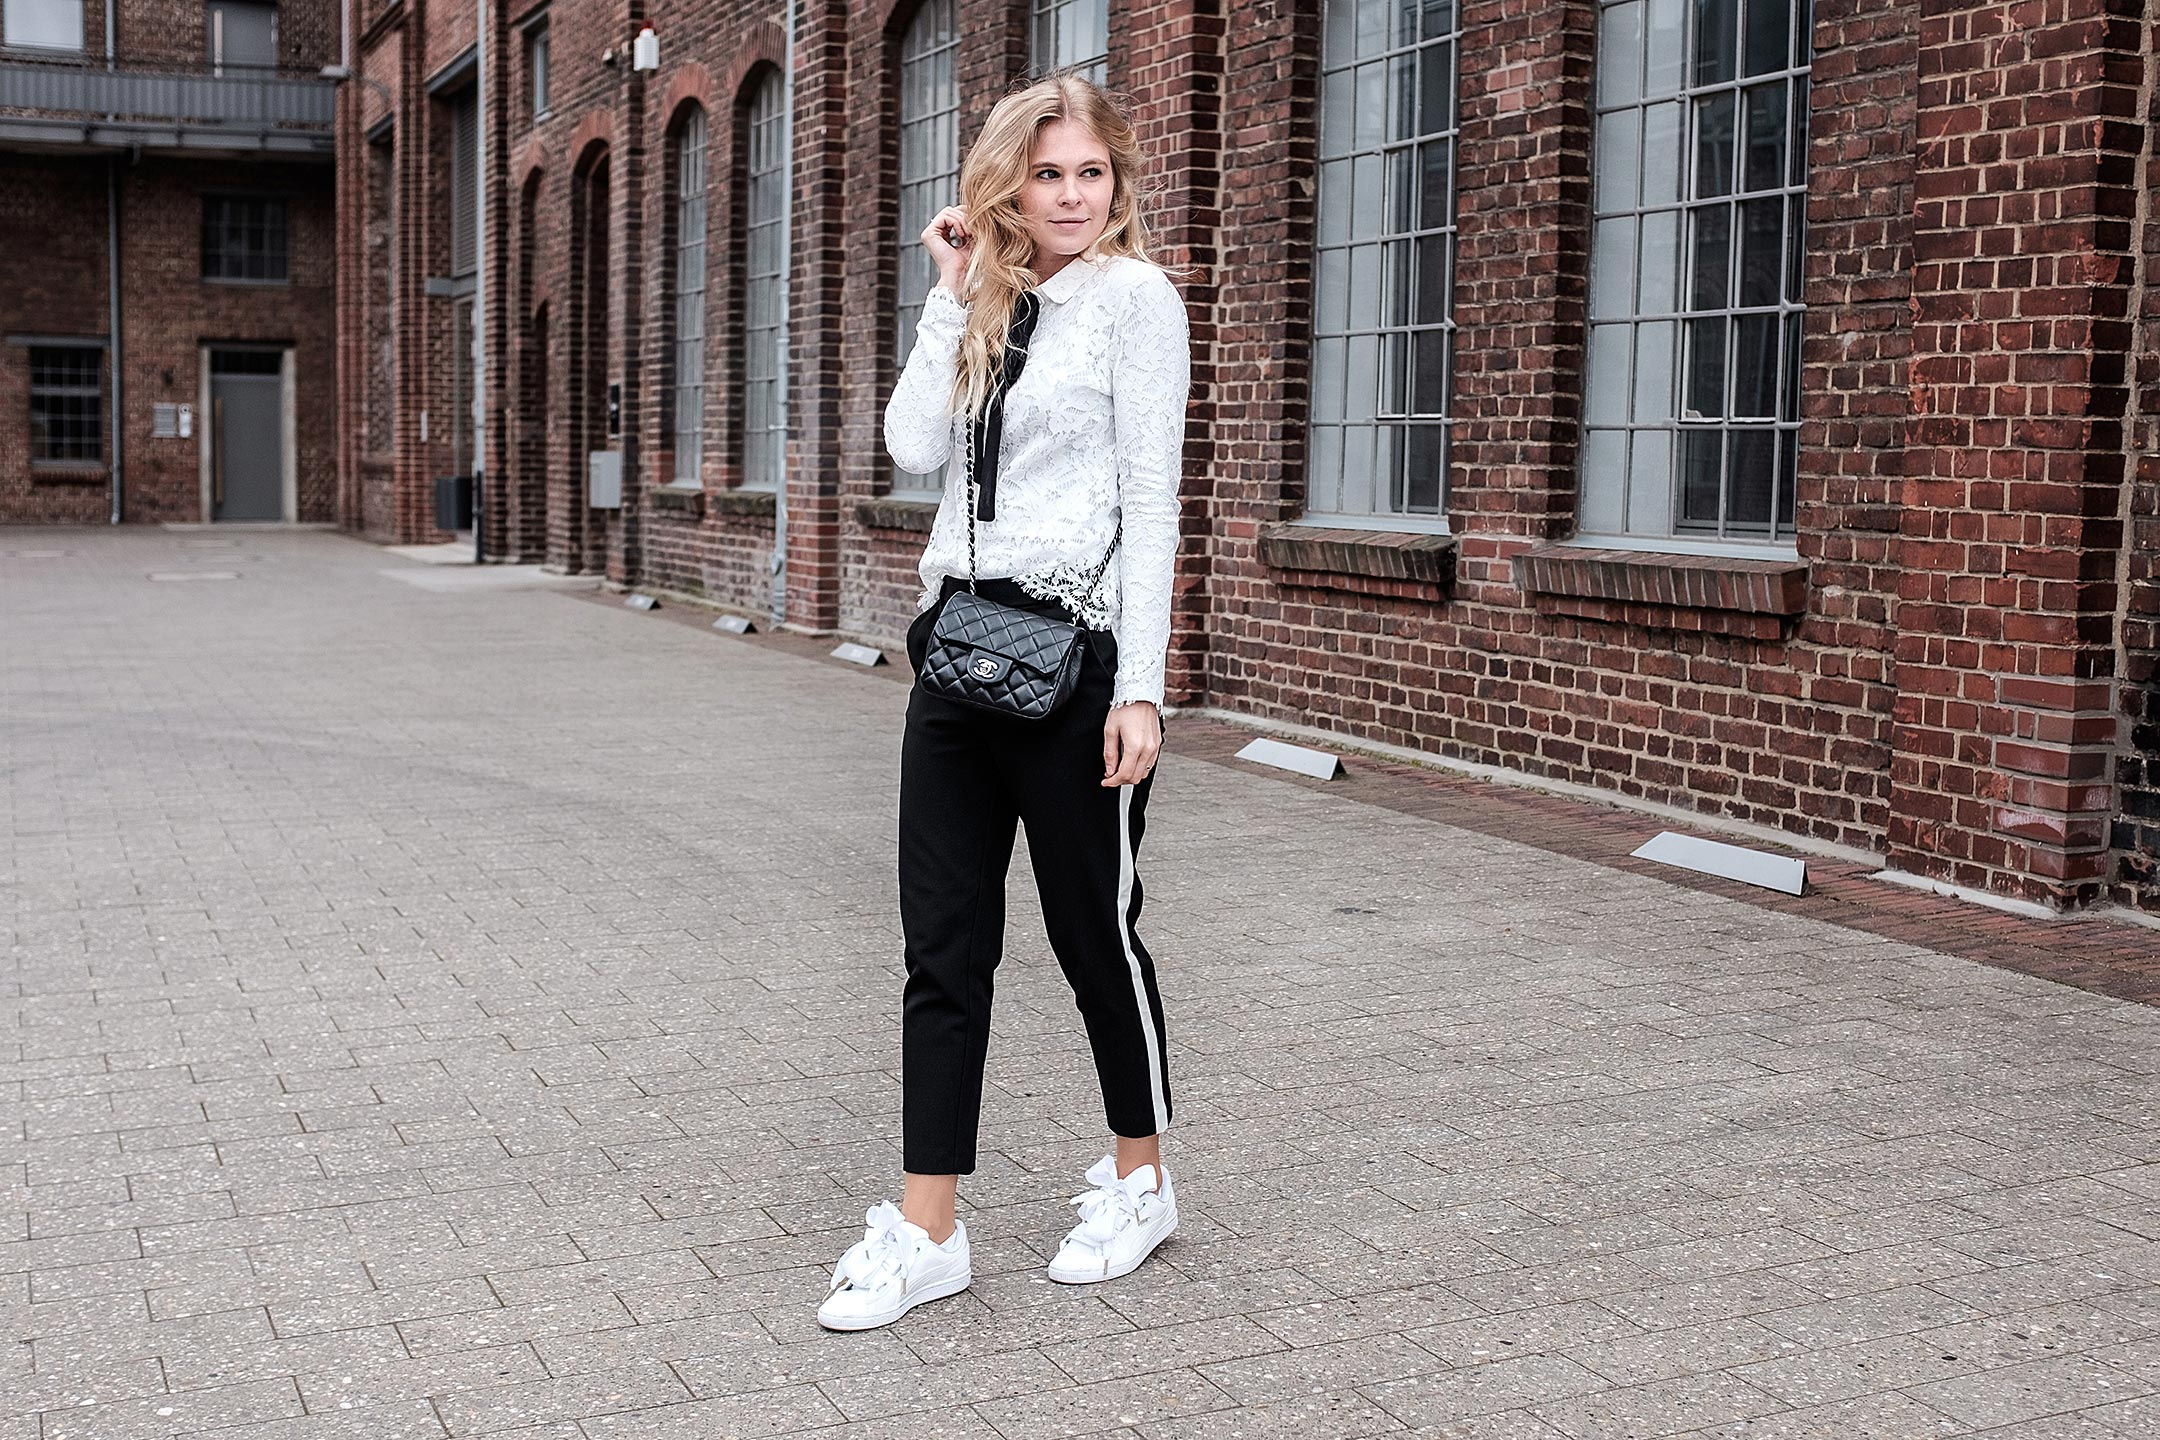 Black and White Outfit Sunnyinga Fashionblog Düsseldorf